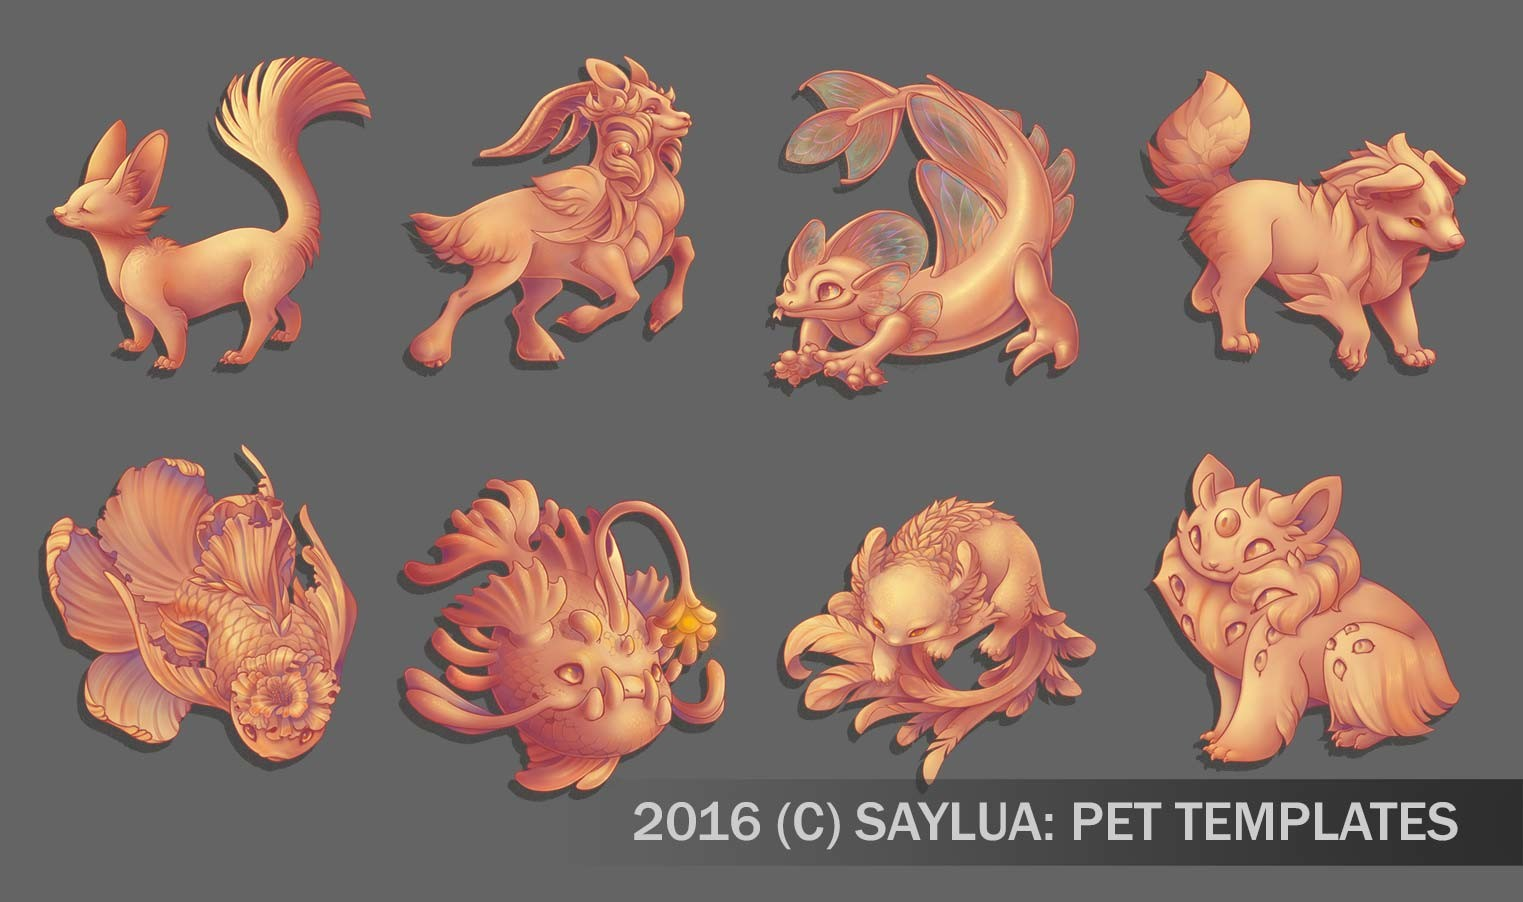 Creature Design & Template for the website Saylua